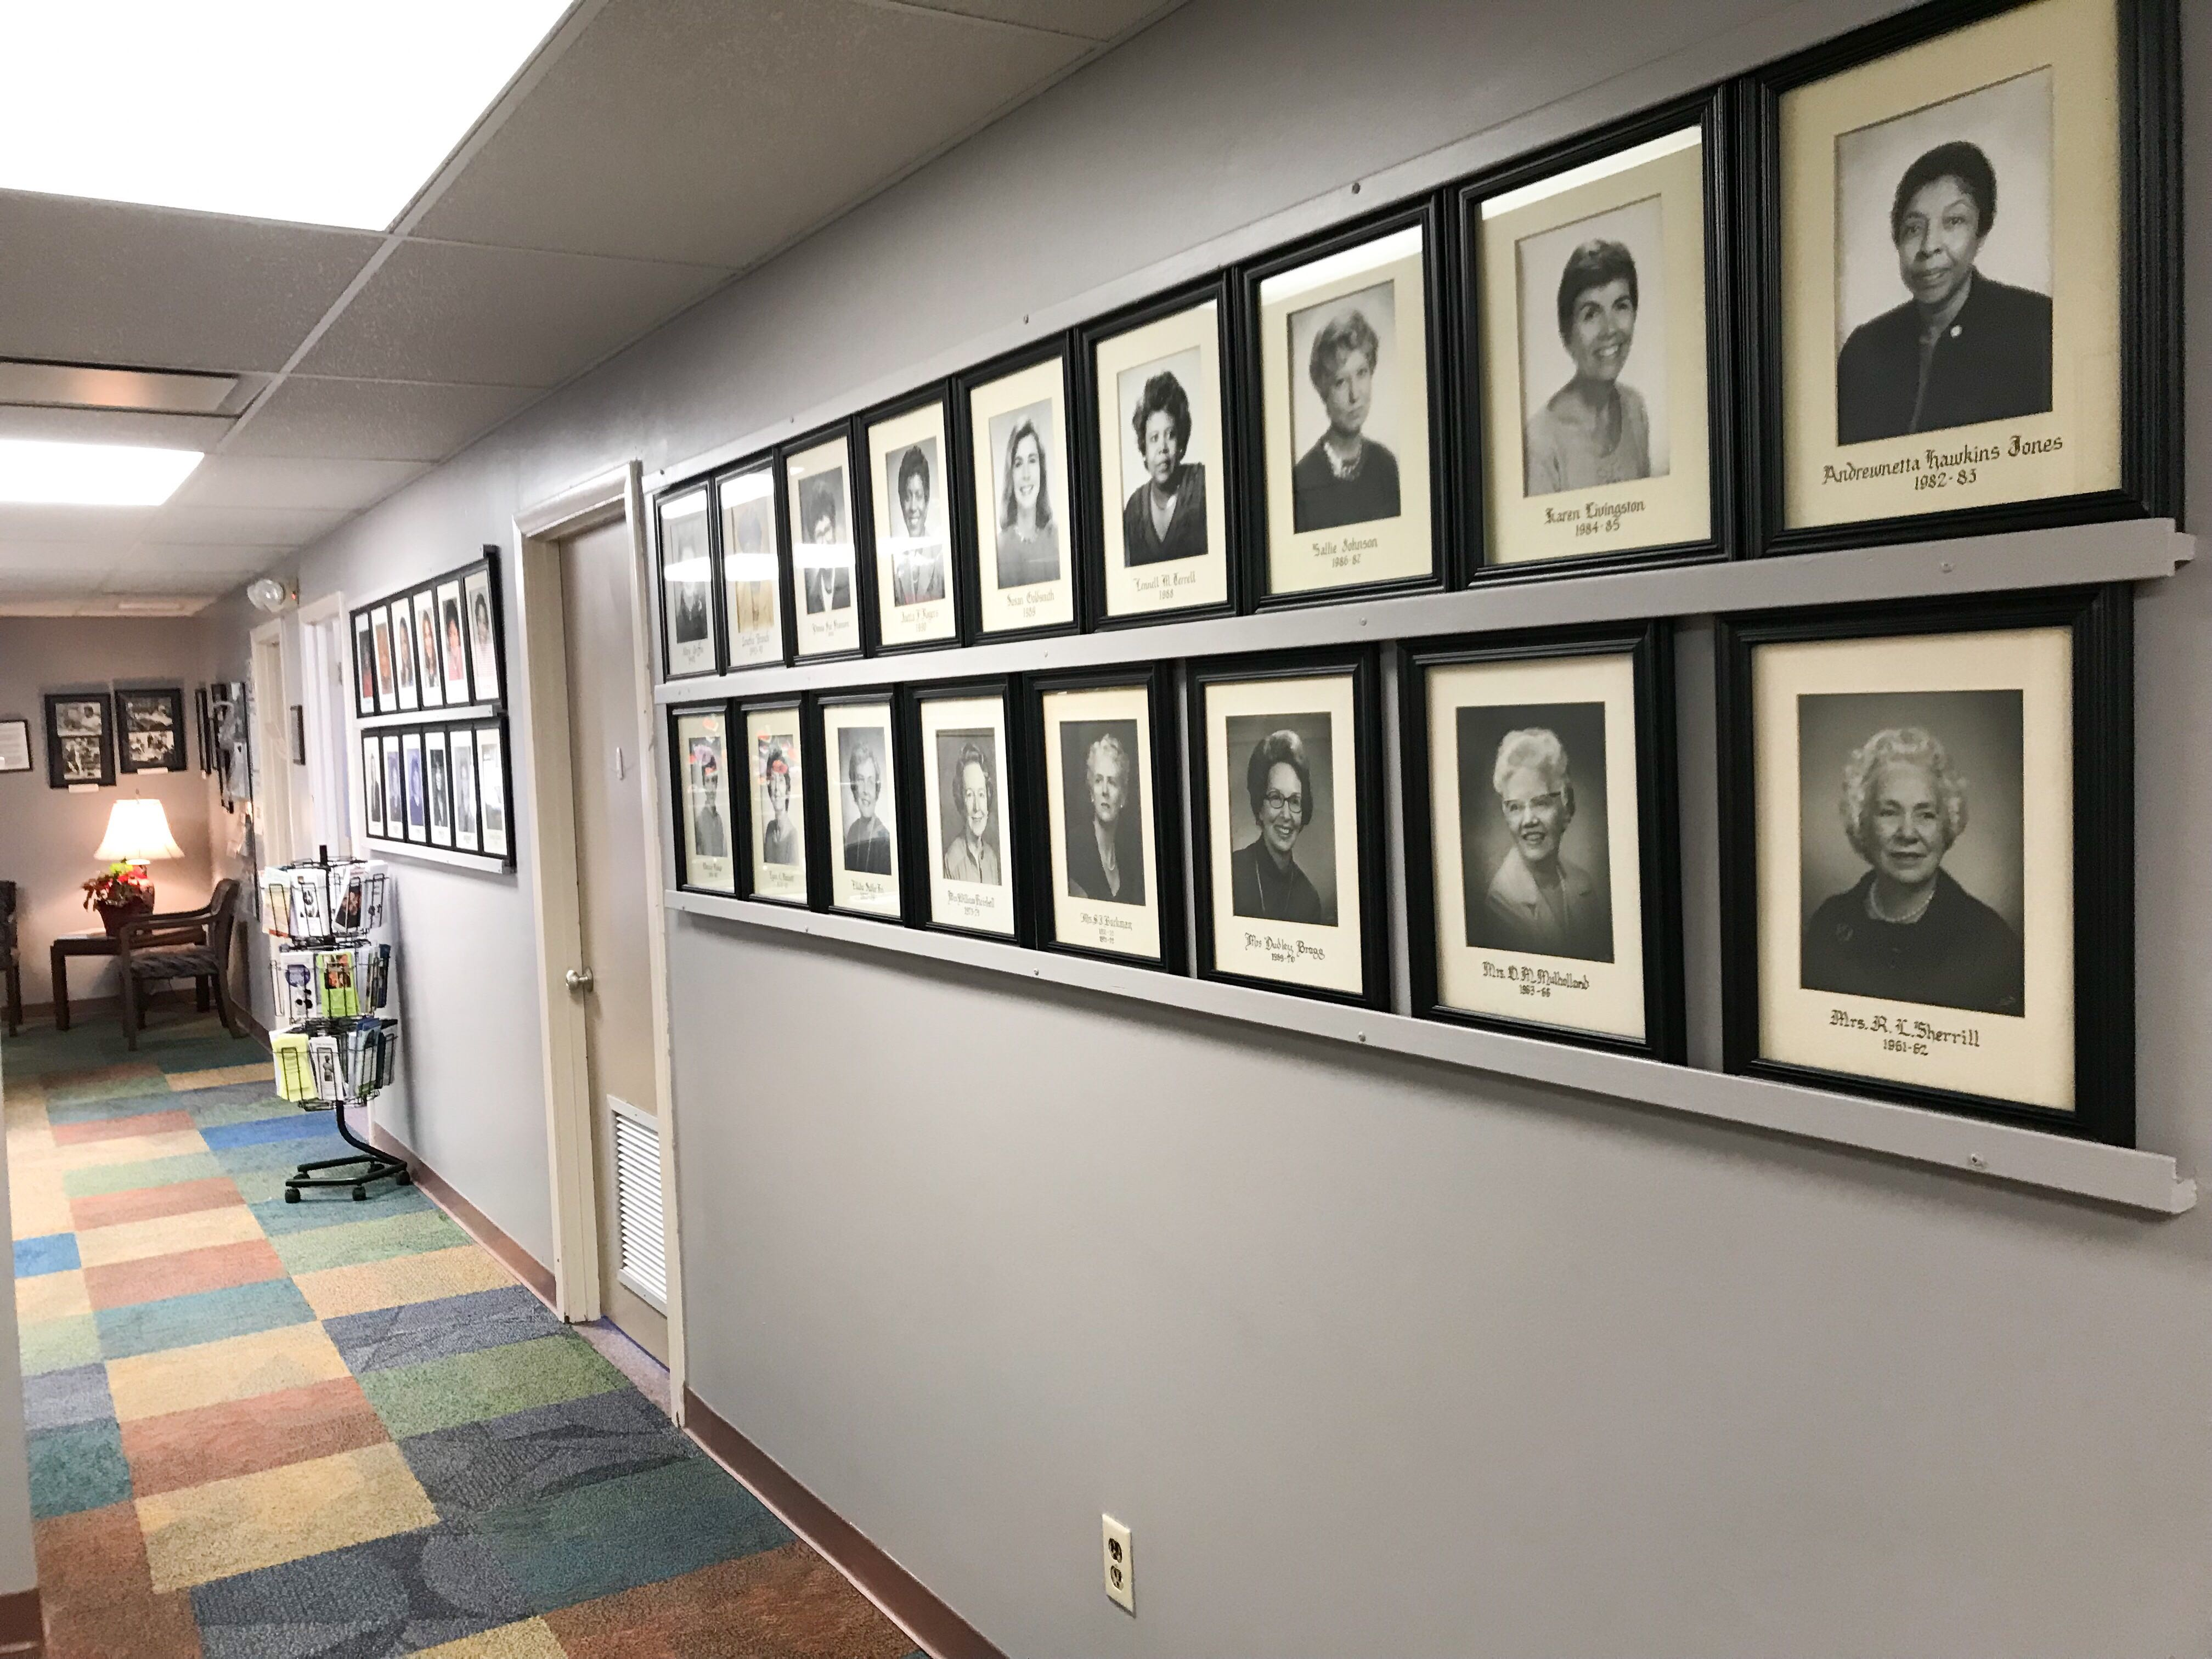 Photos of past board members line the walls of the YWCA of Greater Memphis' headquarters. The YWCA celebrates its 100th year in Memphis this year. (Cole Bradley)